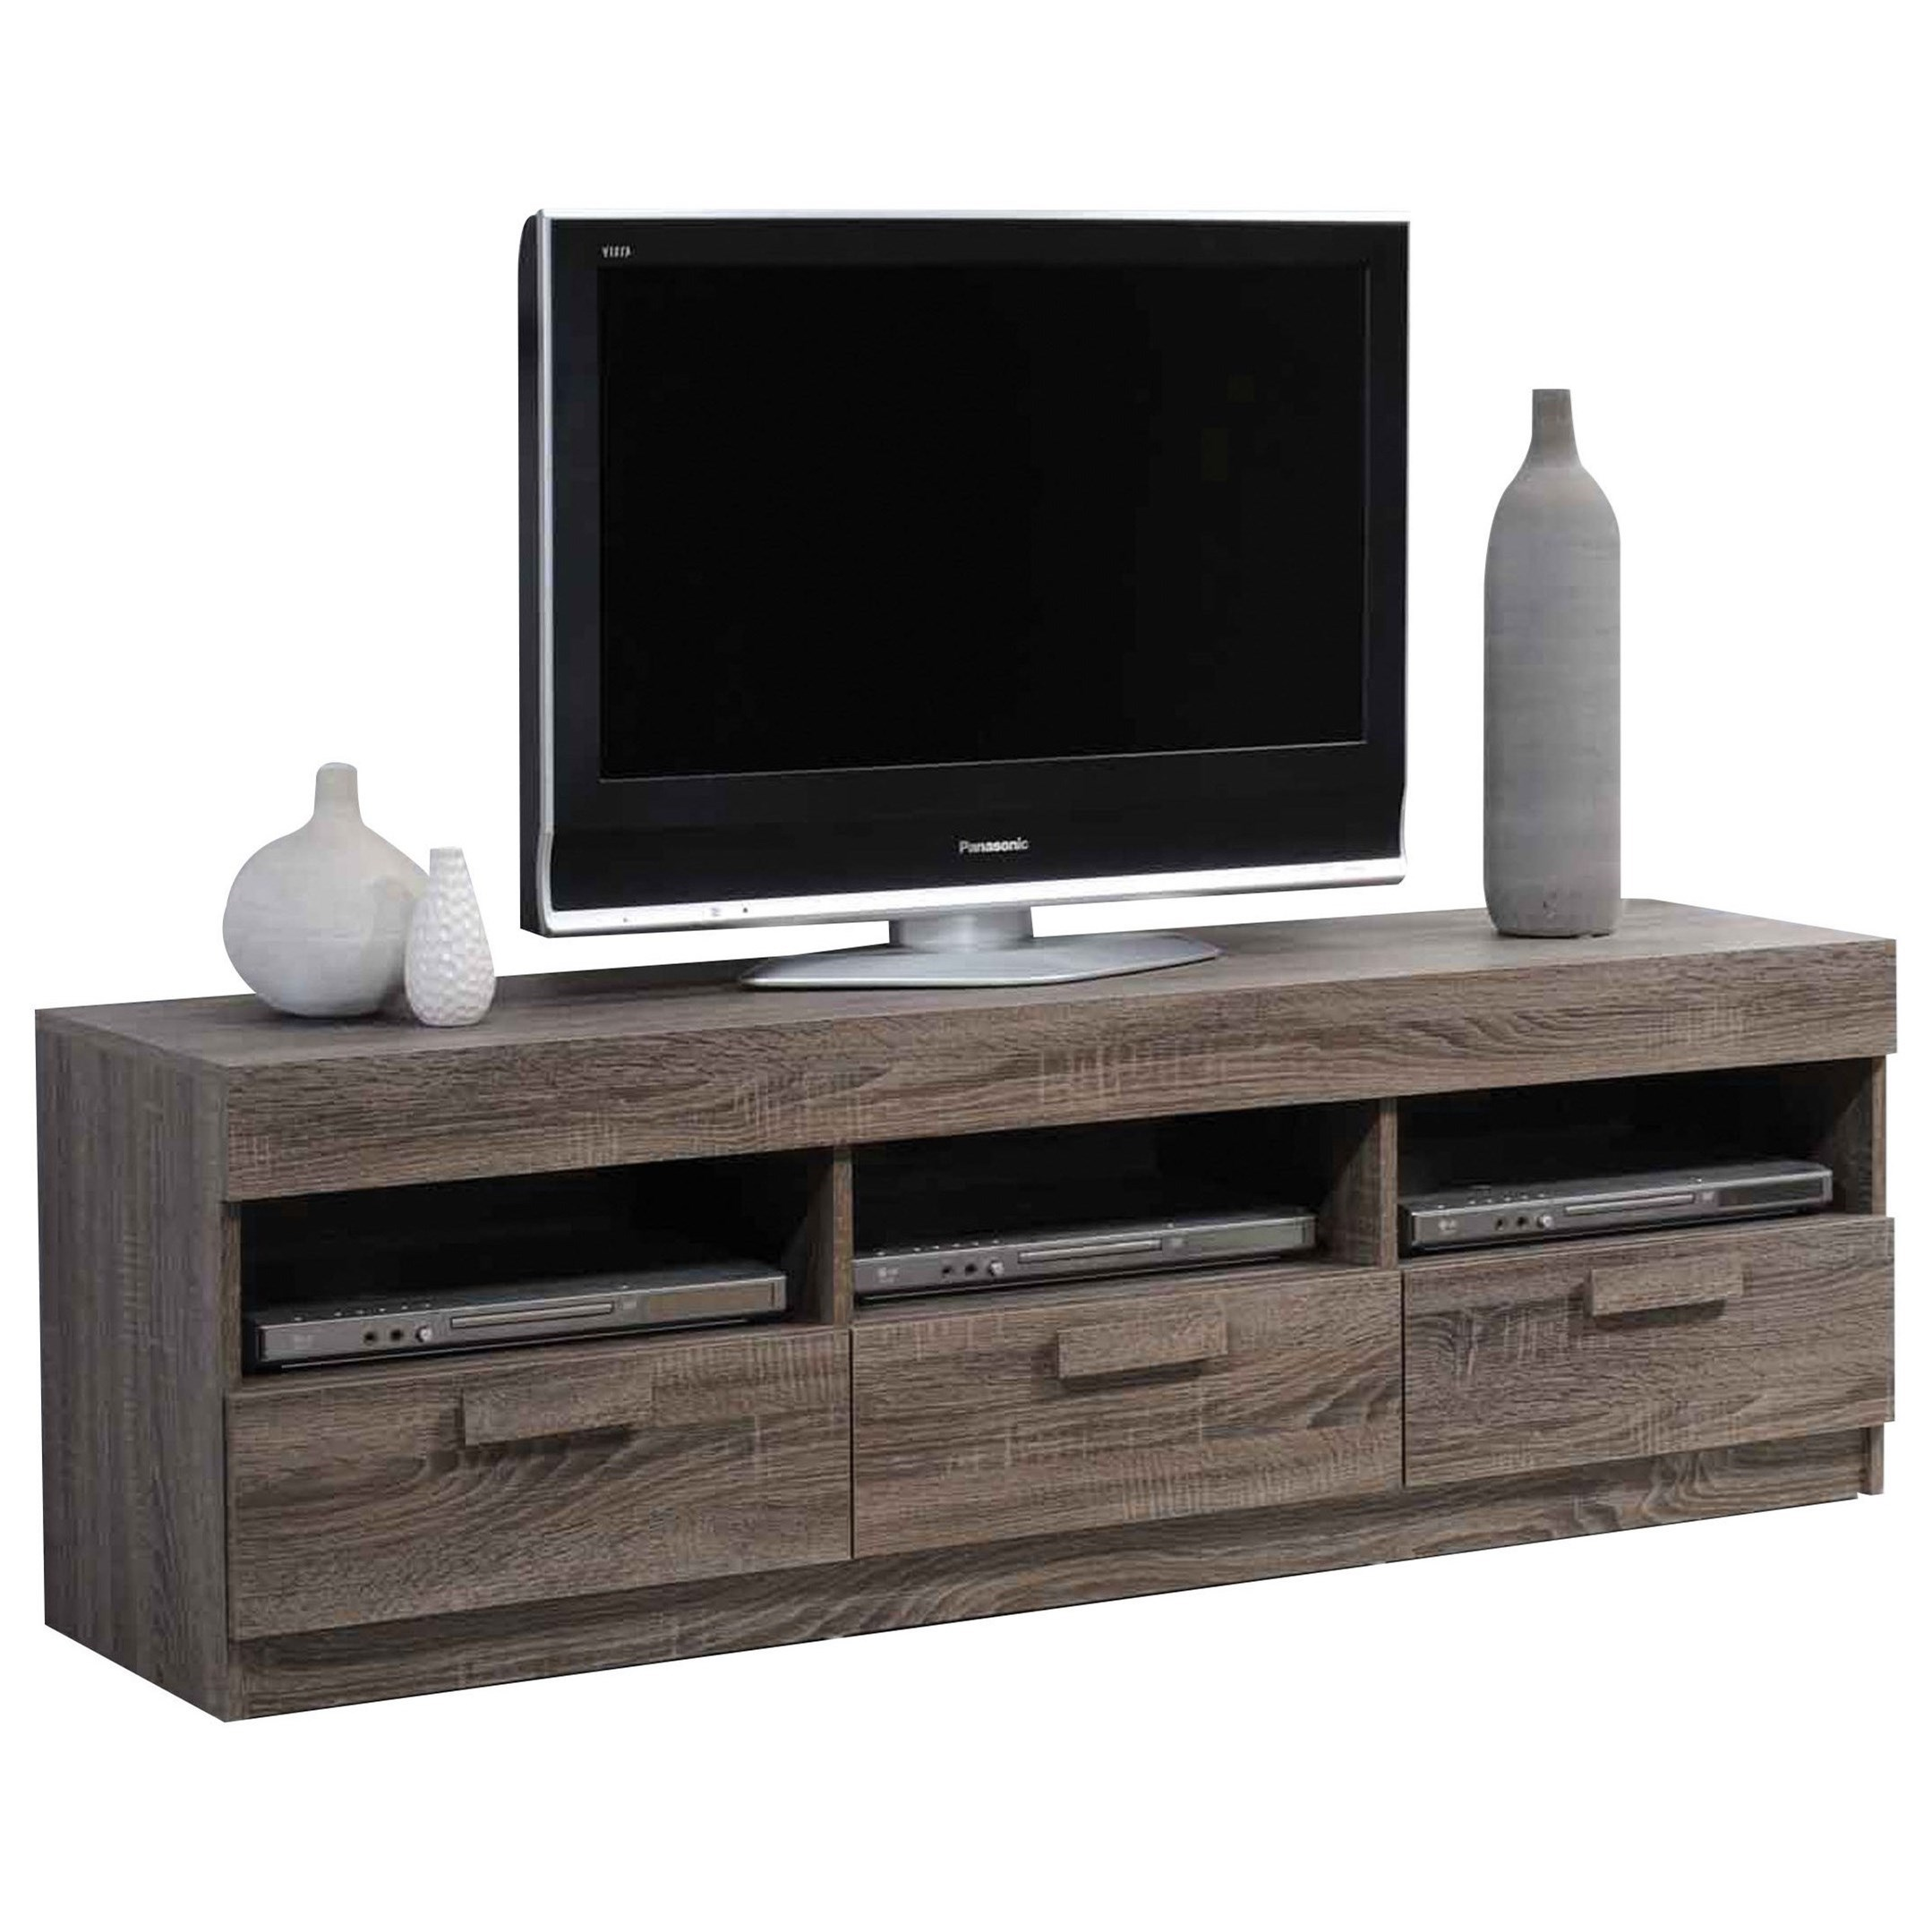 Alvin TV Stand by Acme Furniture at Carolina Direct